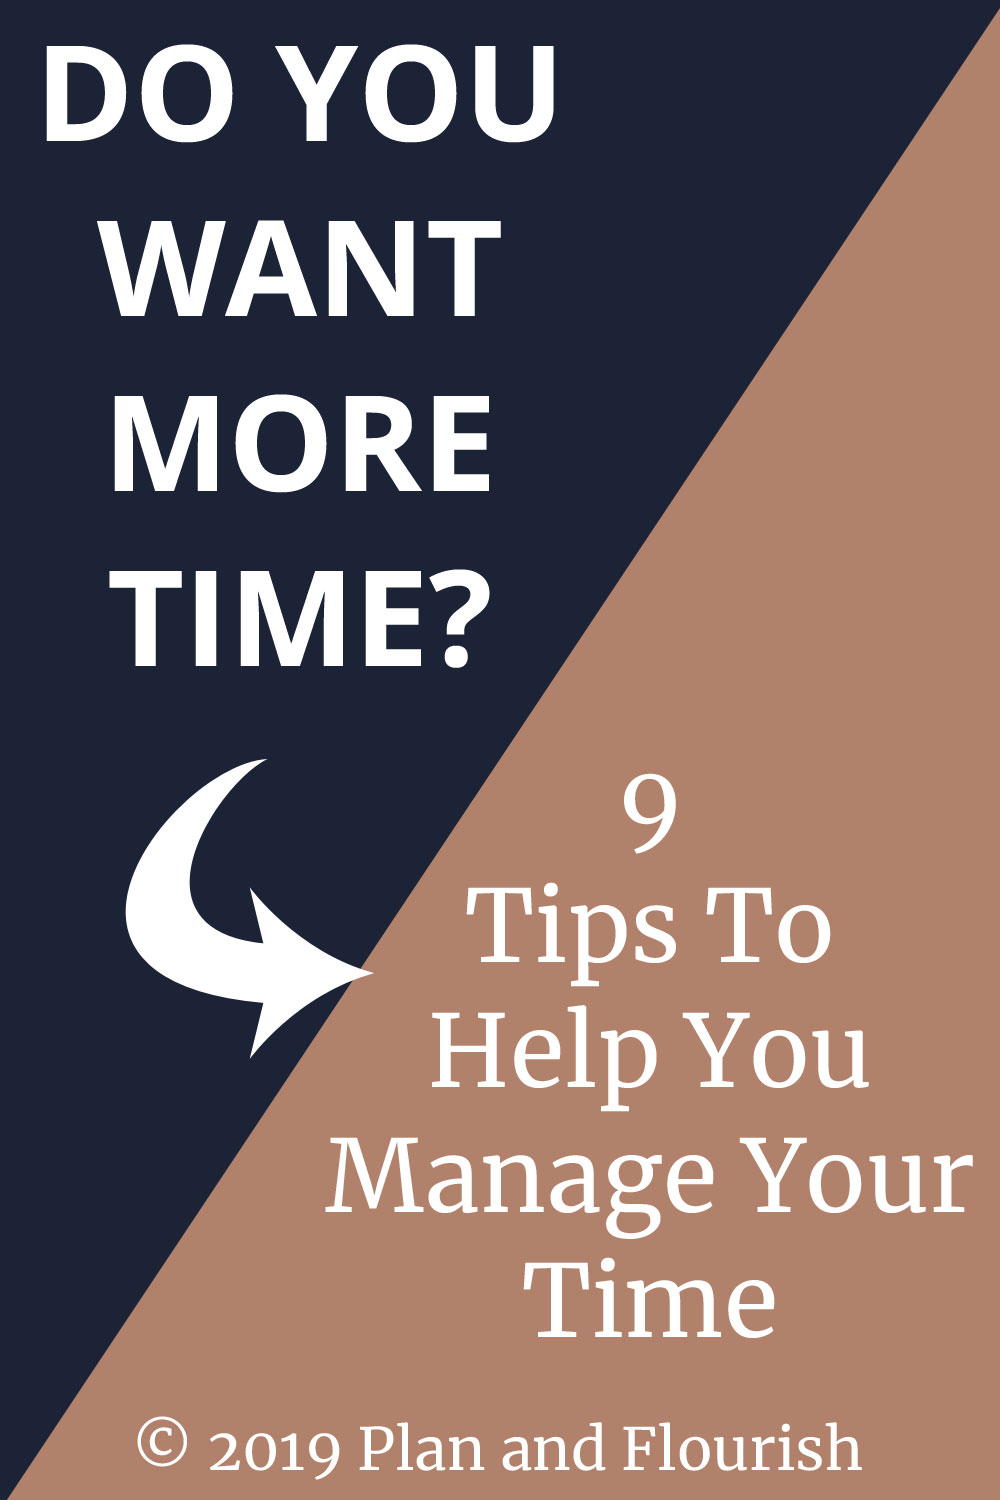 Get 9 tips to help you manage your time. | Read More Here